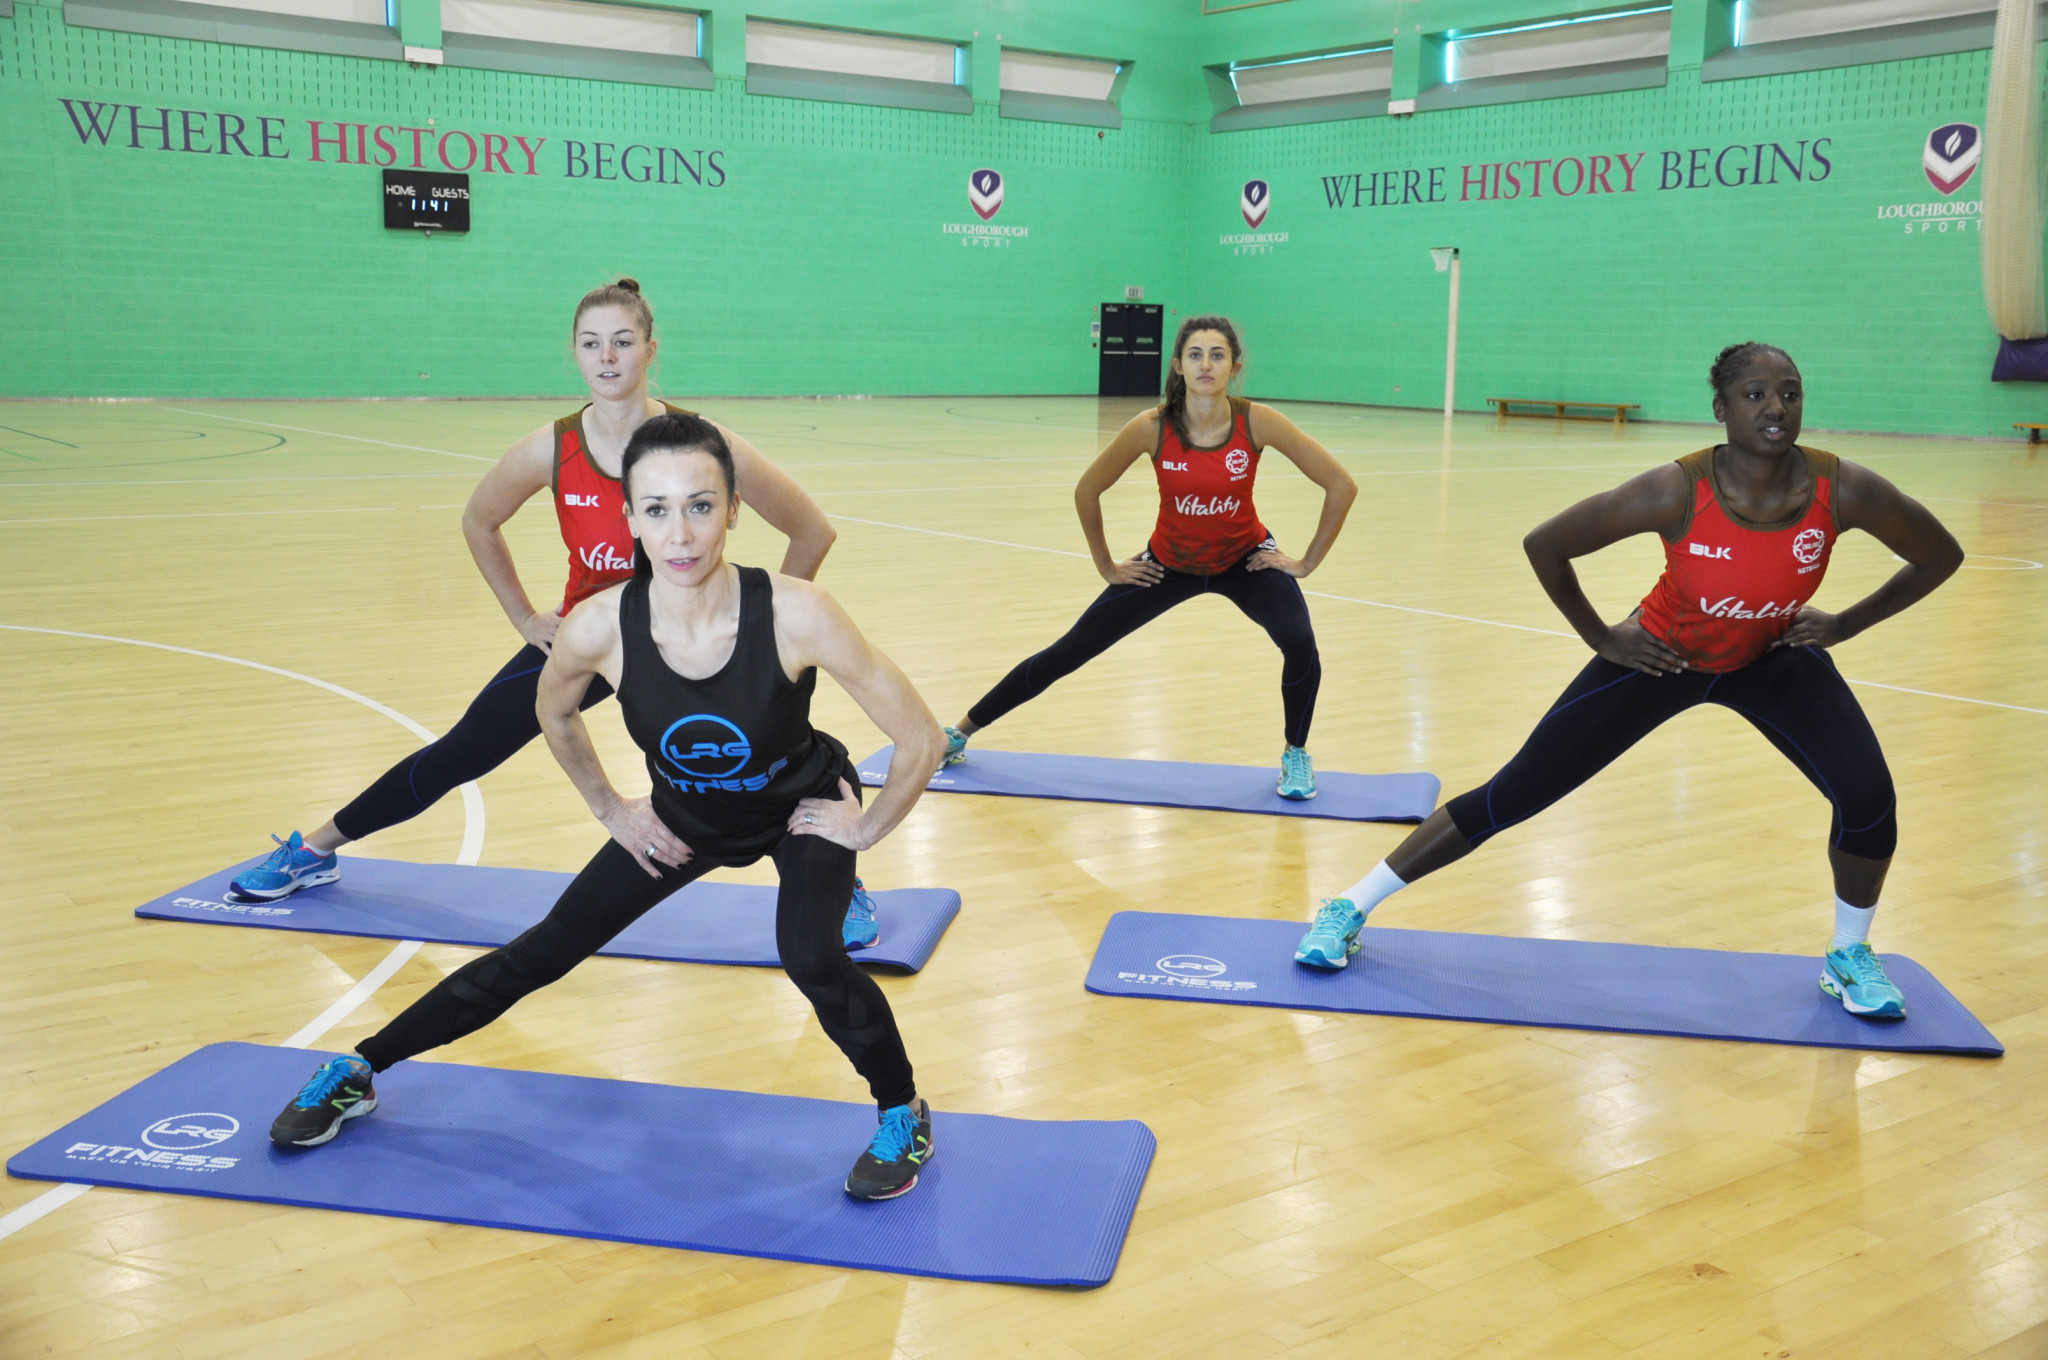 England Netball's partnership with LRG Fitness is expected to bring benefits to players of all ages and fitness levels ©England Netball